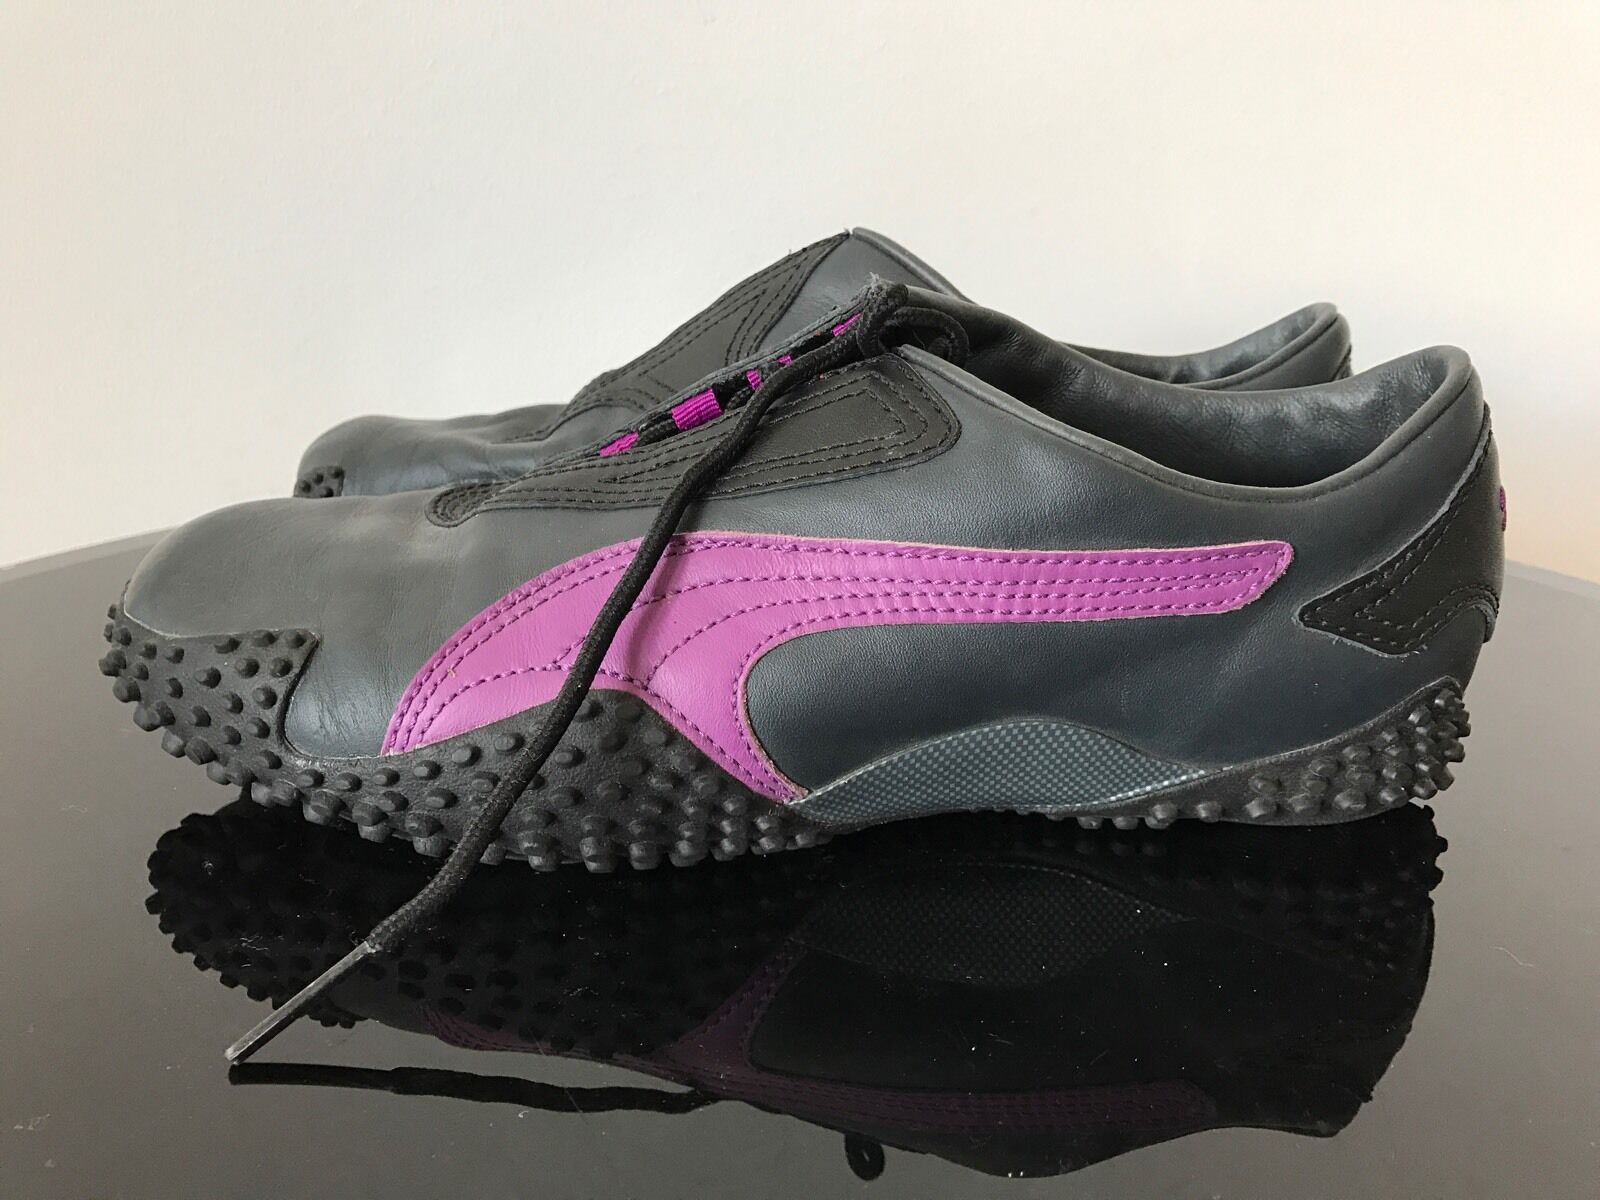 Puma Mostro Lace Up Dark Gris Leather Violet Stripe Sport Trainers Shoes8